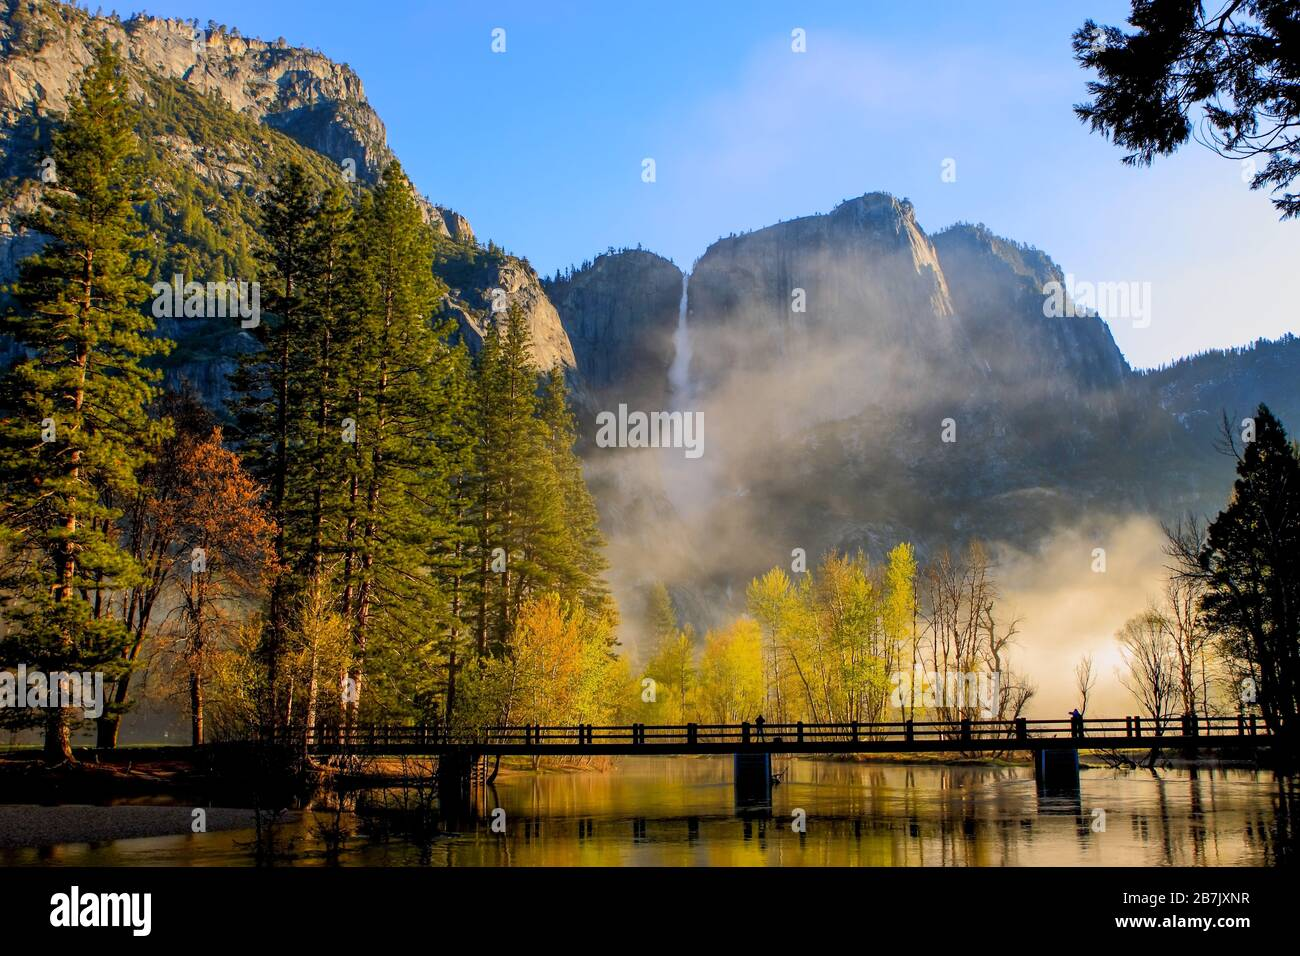 early-morning-mist-rising-above-the-swinging-bridge-over-the-merced-river-with-yosemite-falls-in-the-background-yosemite-national-park-california-usa-2B7JXNR.jpg